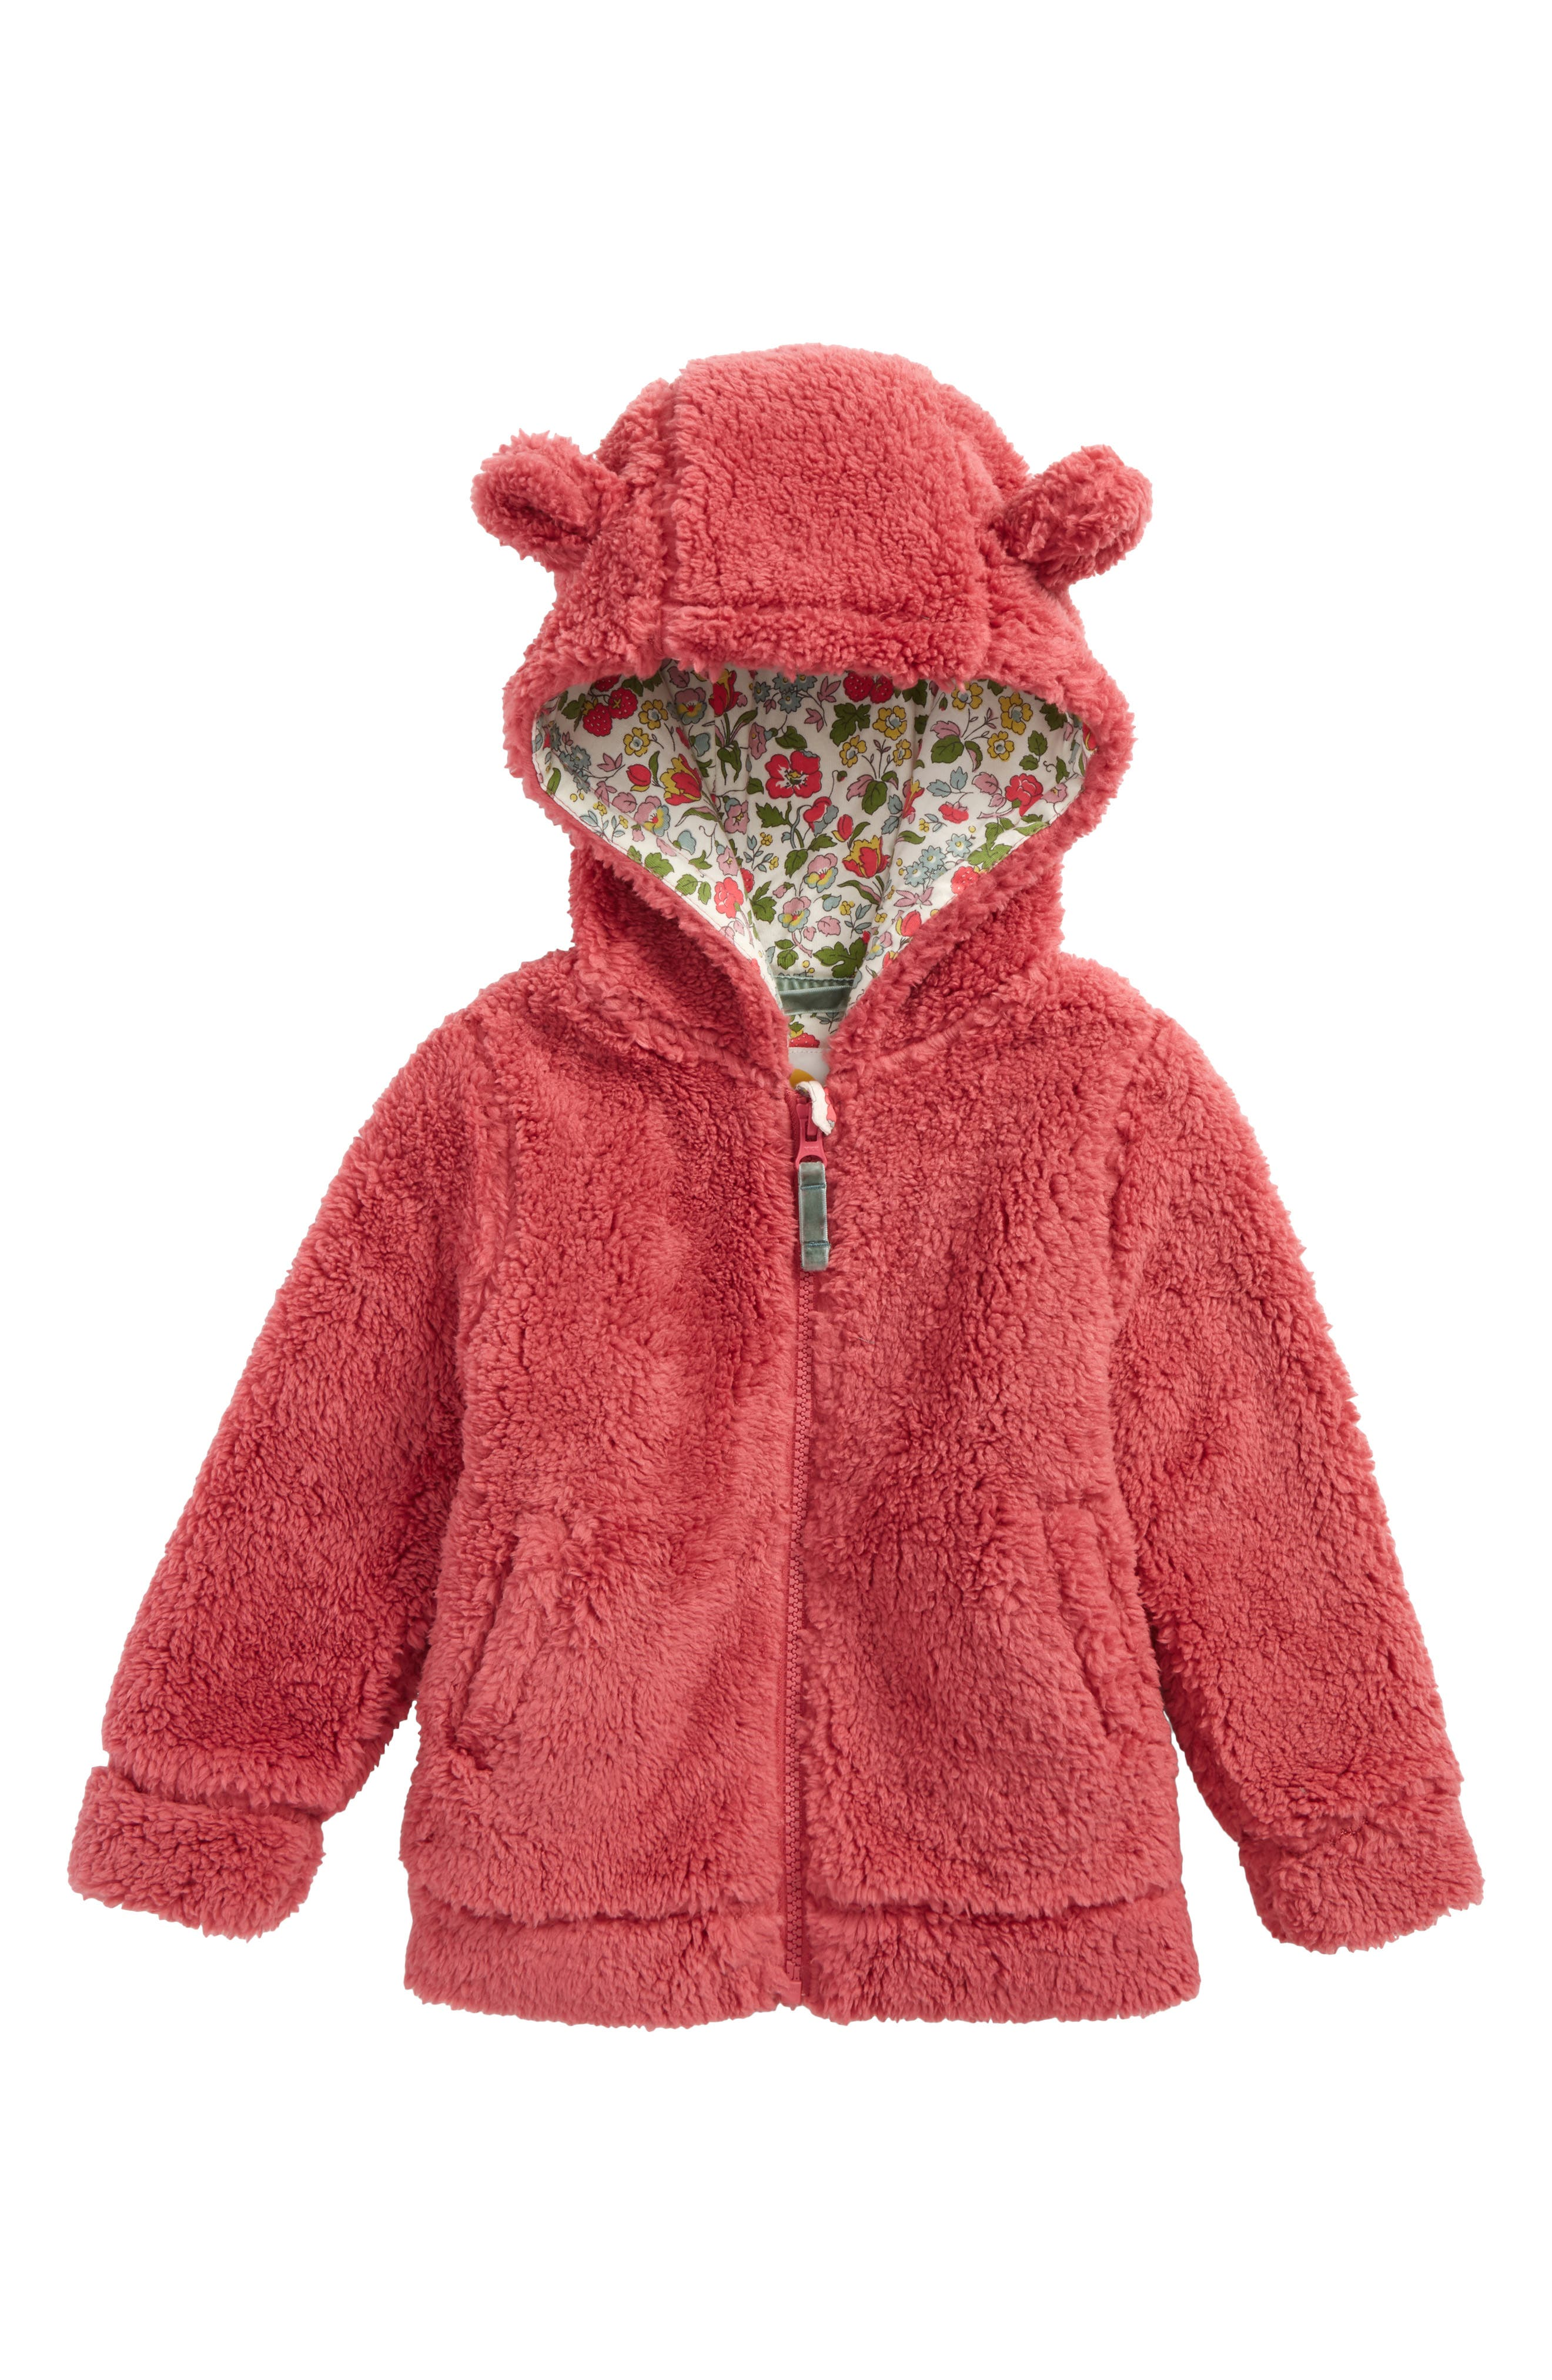 Cosy Teddy Bear Hoodie,                             Main thumbnail 1, color,